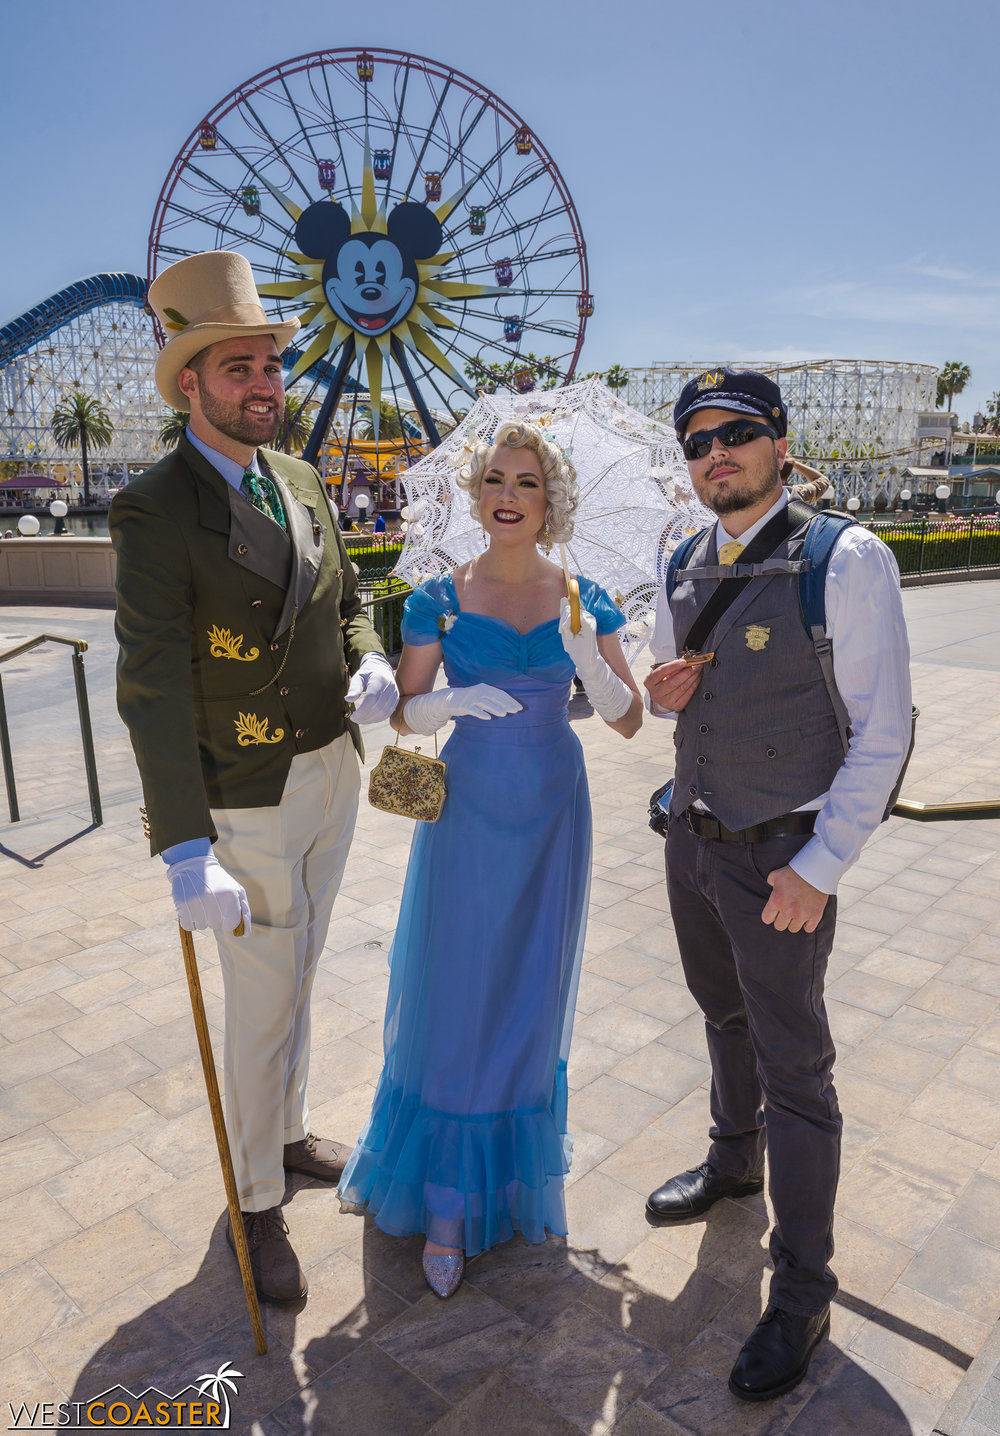 Kit and Ella from the live action  Cinderella , and their friend, who Disneybounded as Captain Nemo from  20,000 Leagues Under the Sea .